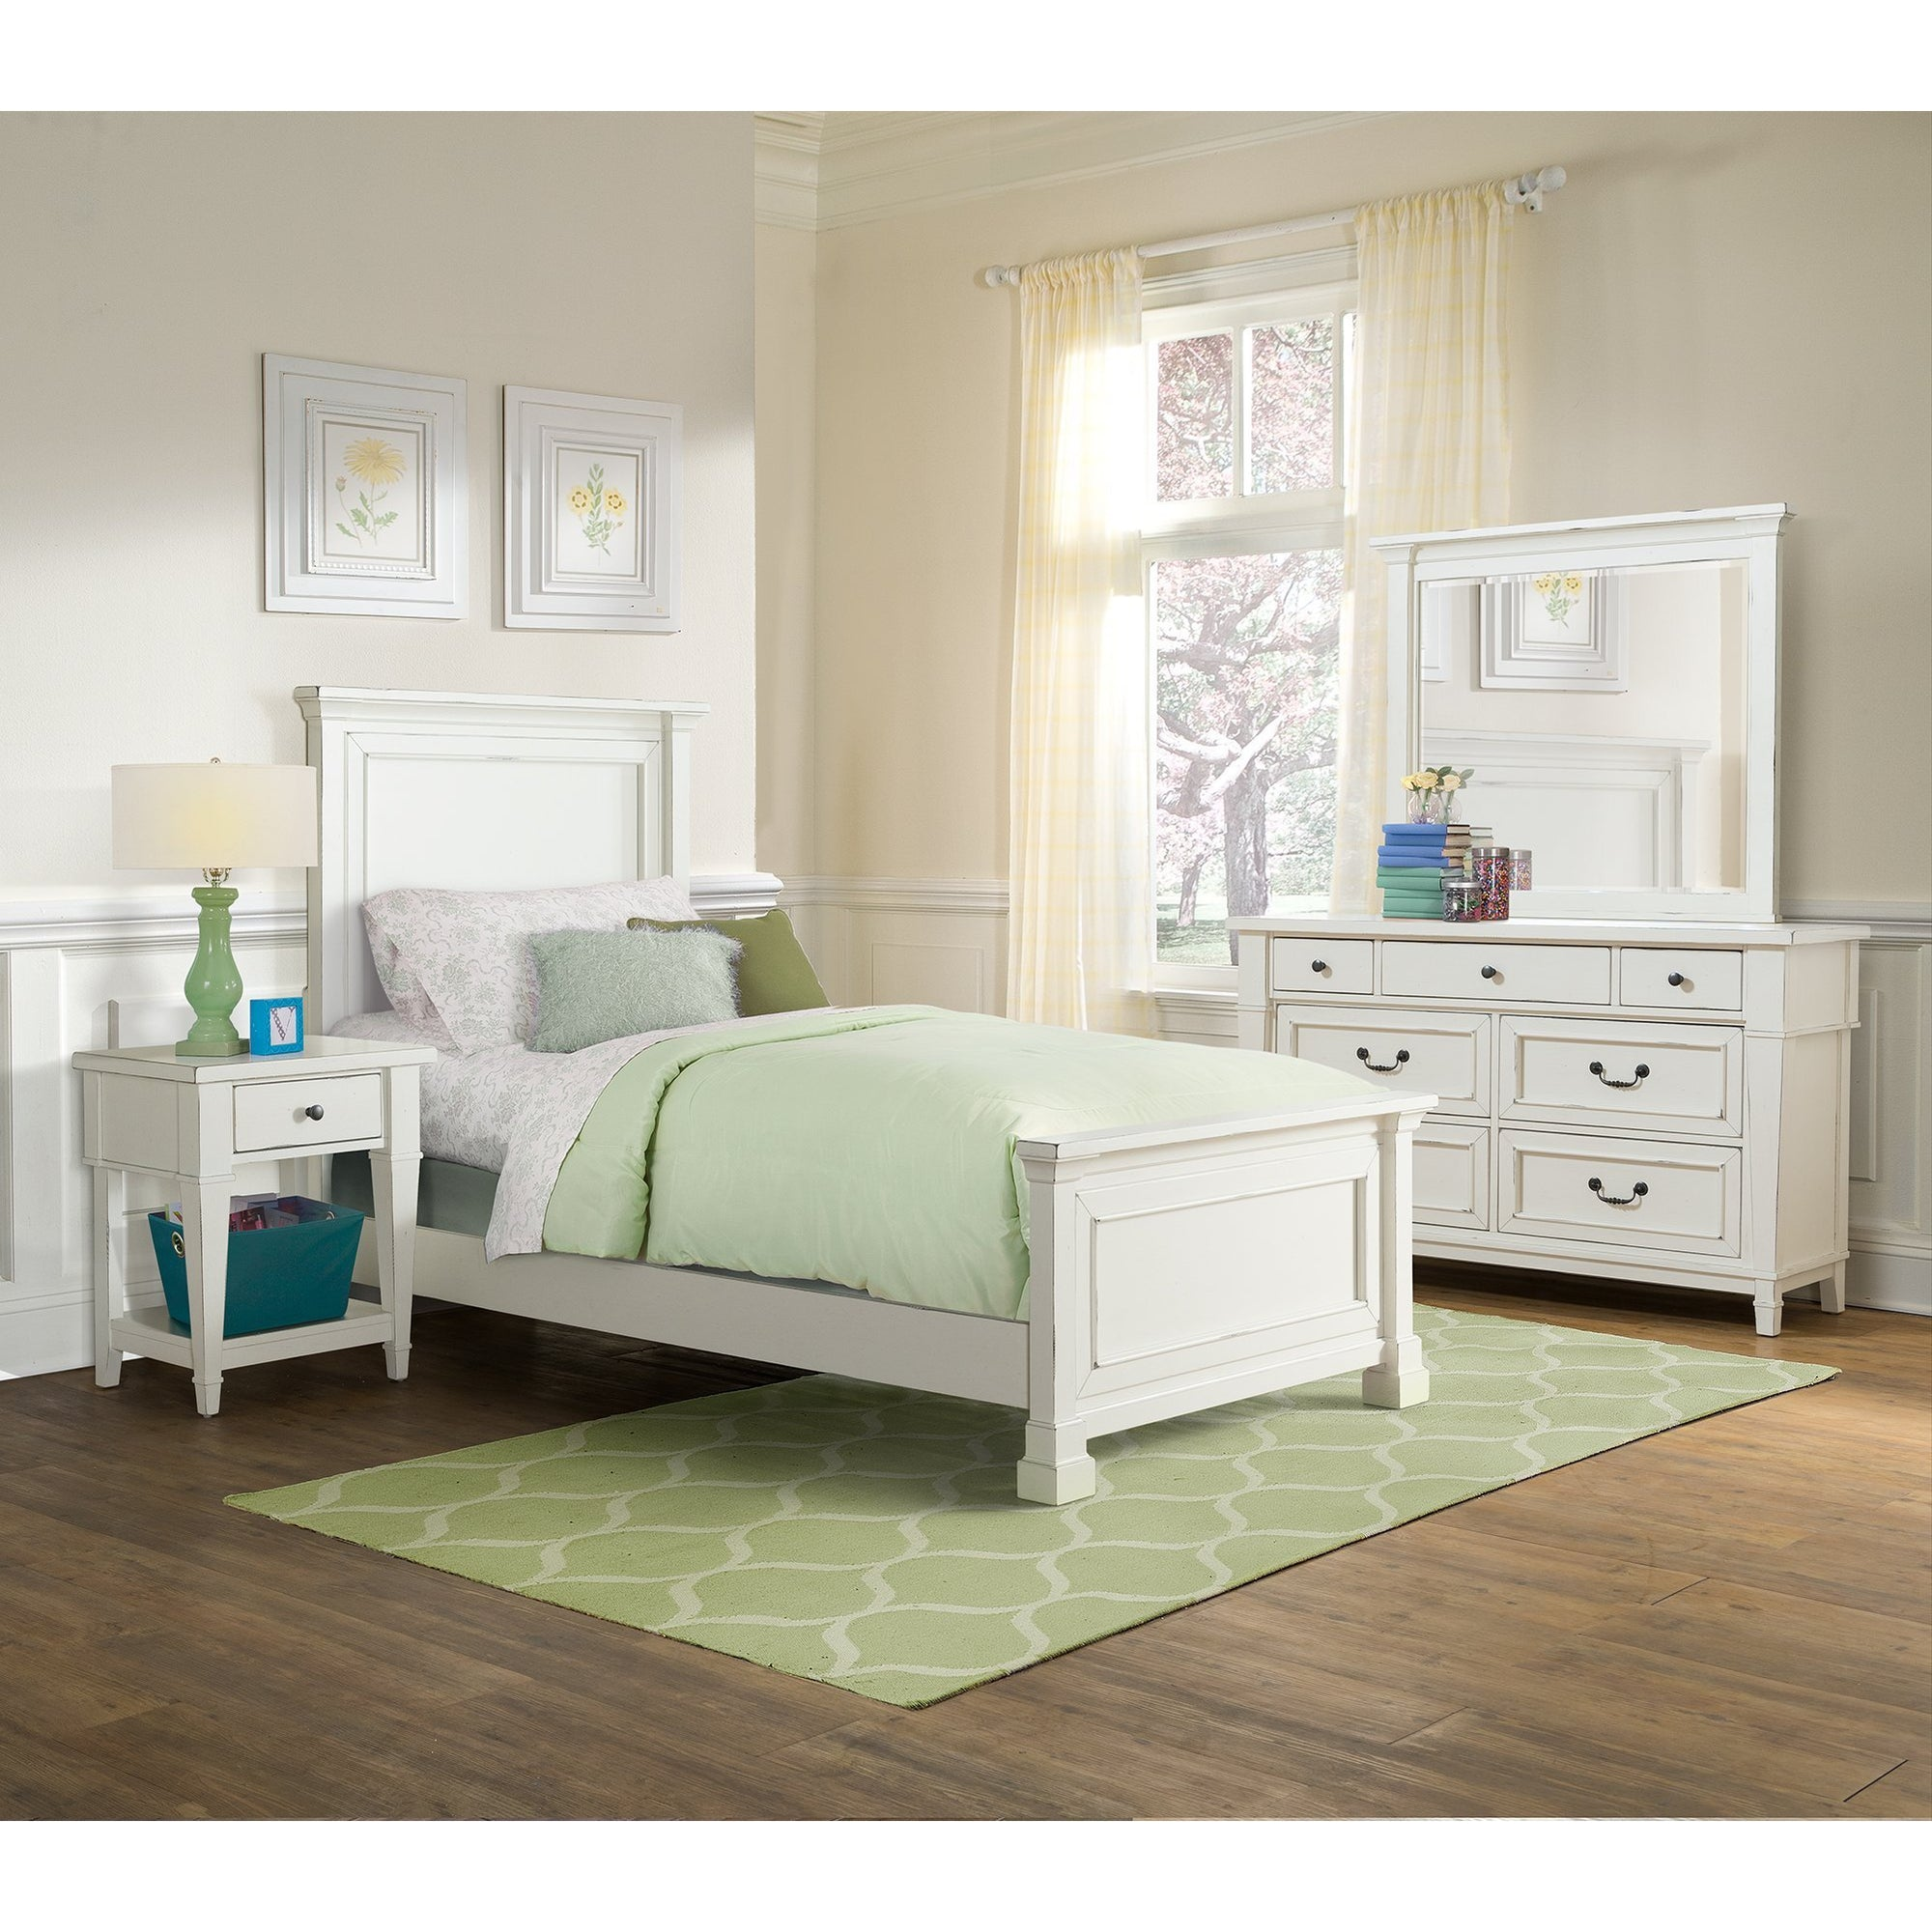 Pebble Creek Youth 4-Piece Bedroom Set